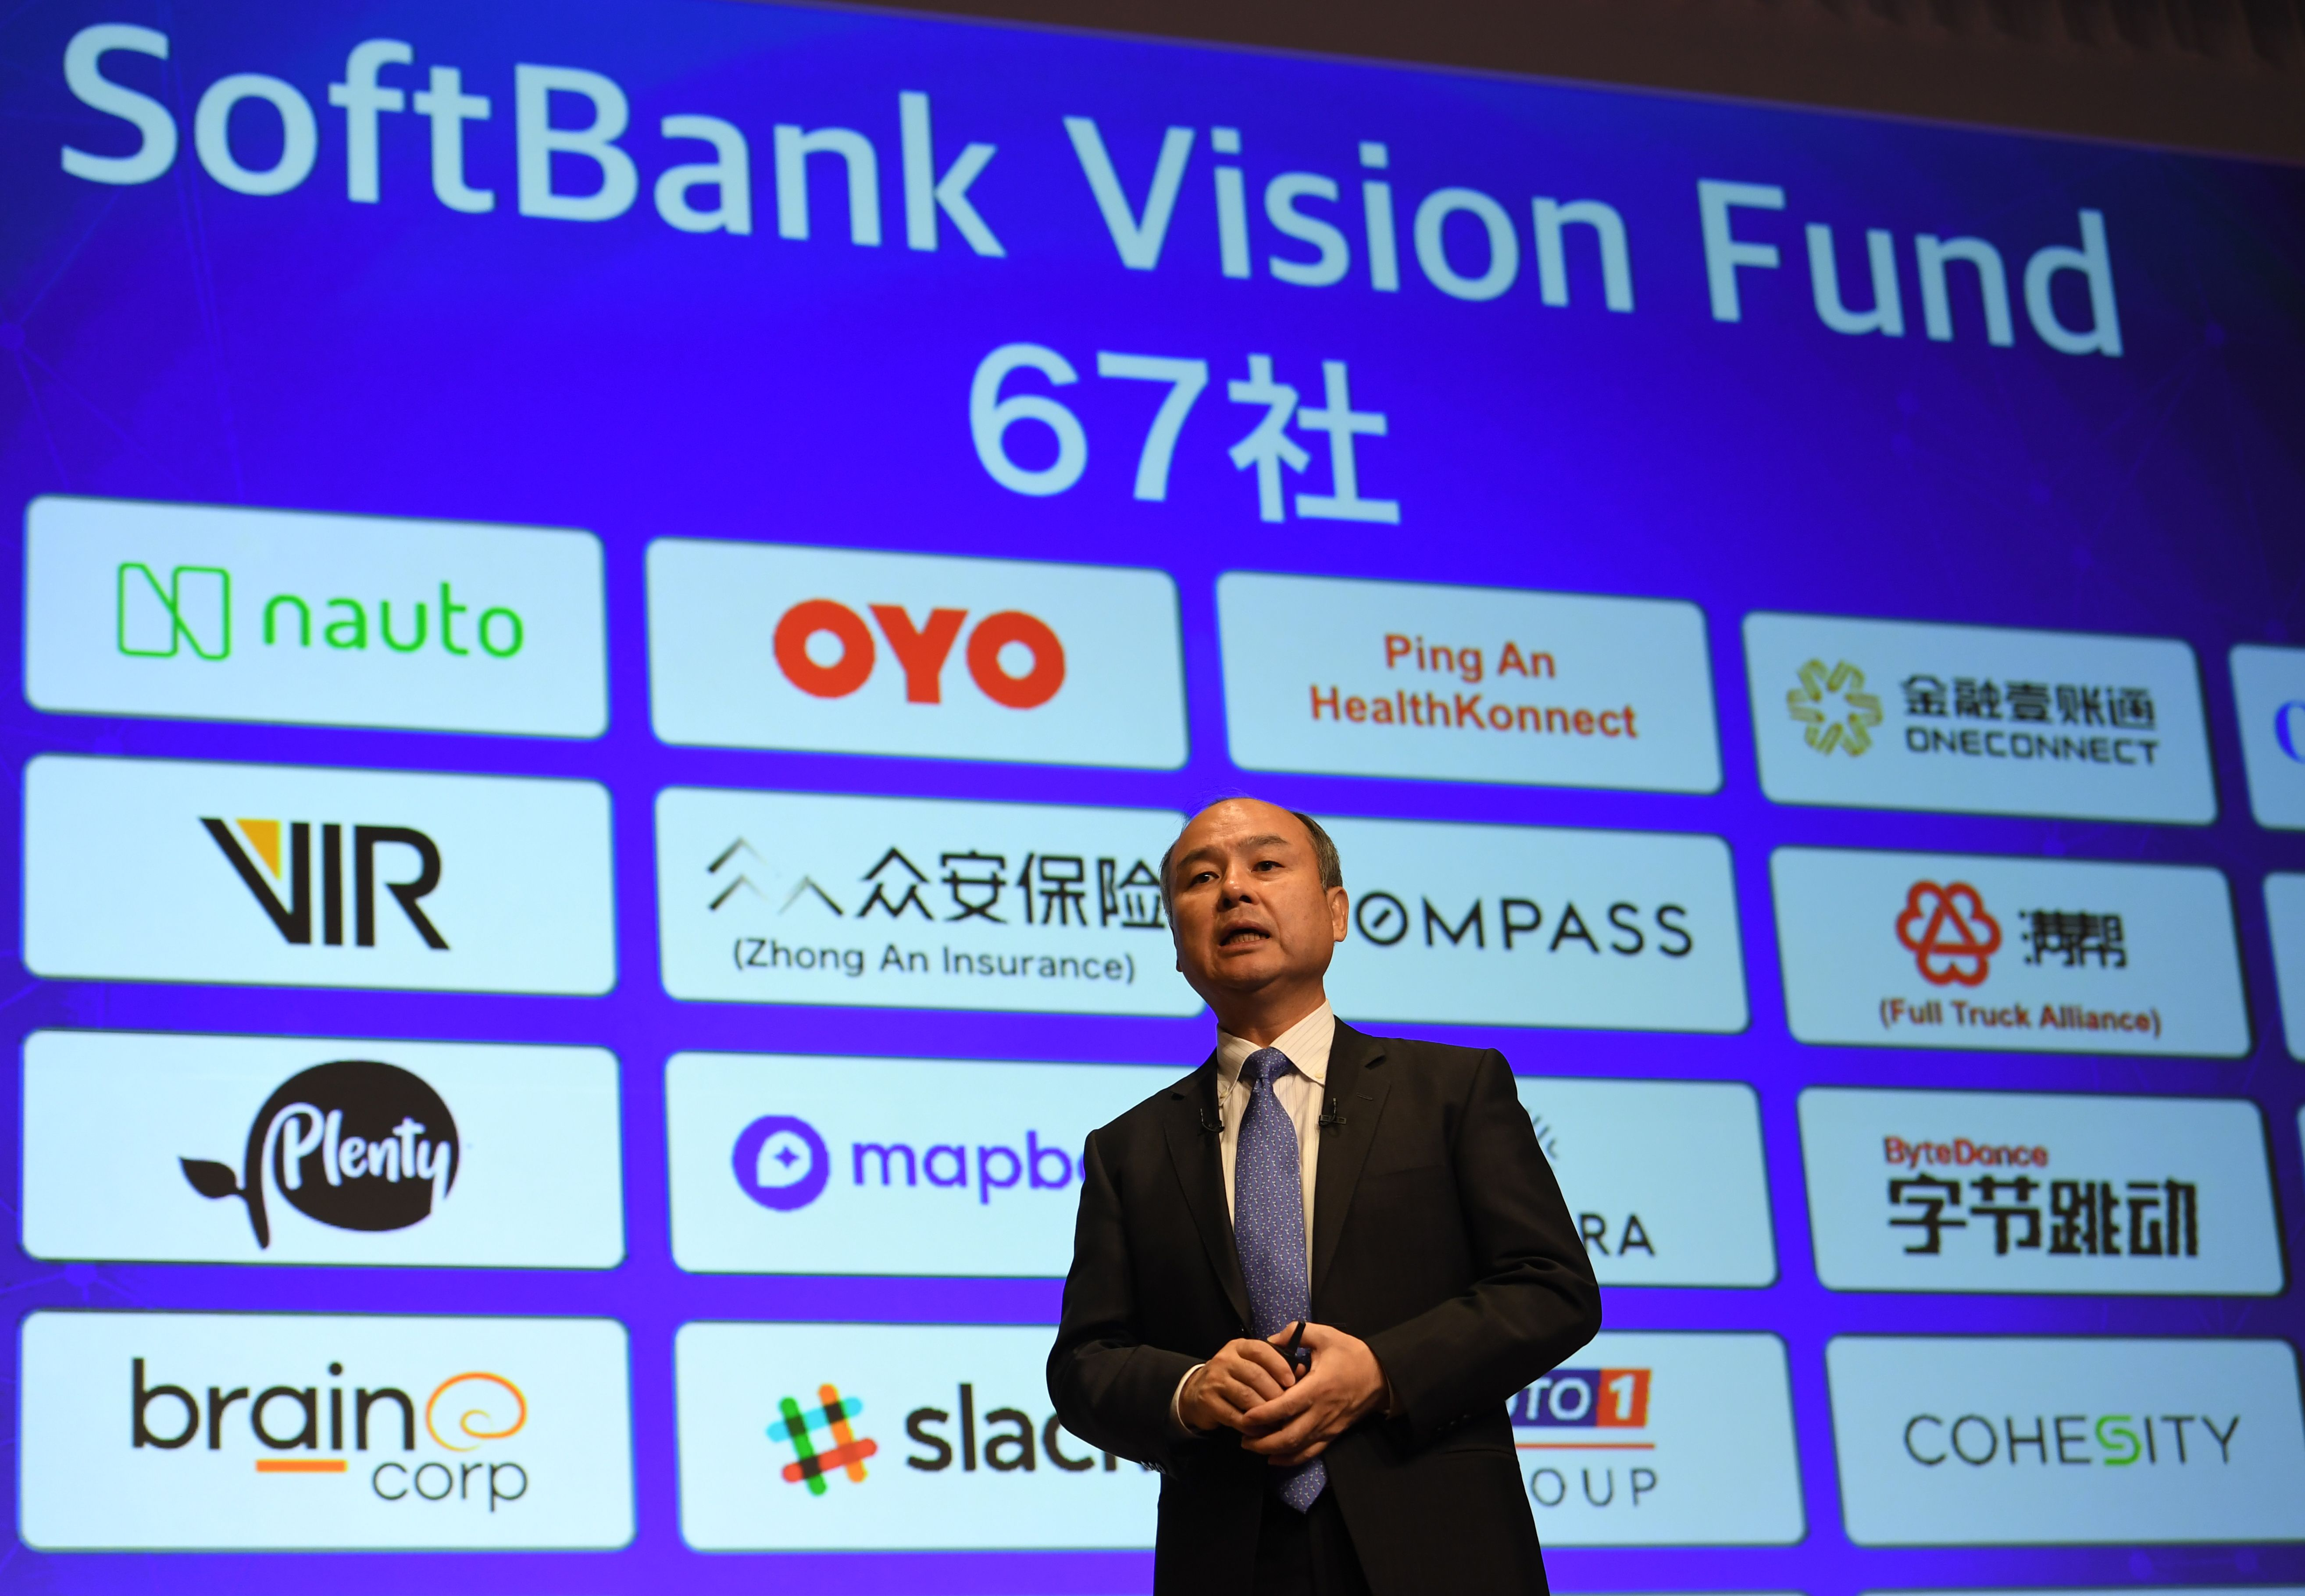 Softbank group CEO Masayoshi Son delivers a speech during his company's financial results press conference at a hotel in Tokyo on November 5, 2018. (TOSHIFUMI KITAMURA/AFP/Getty Images)